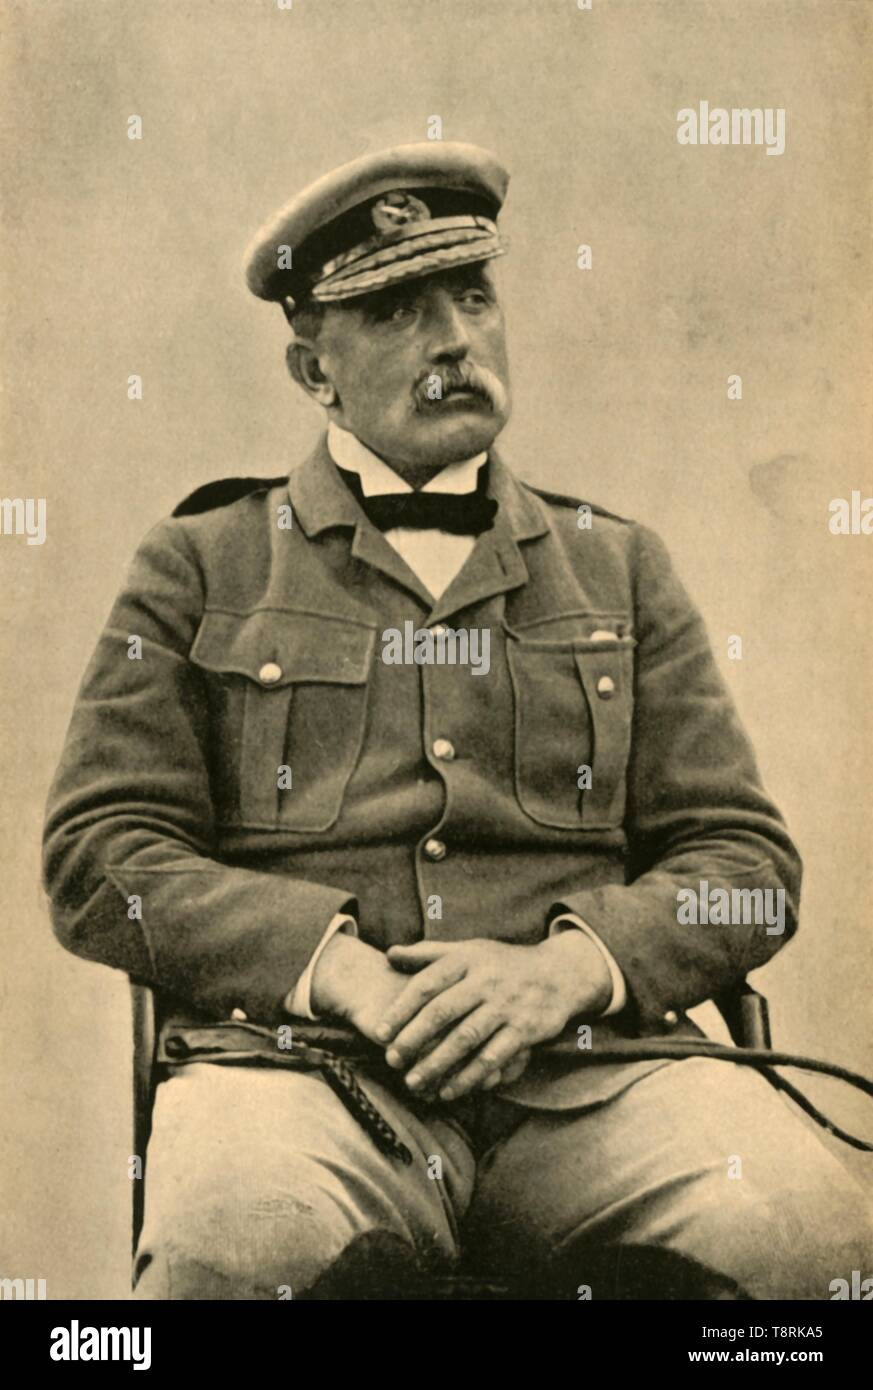 """'Major-General Sir J. D. P. French, K.C.B.', 1901. Portrait of British soldier John Denton Pinkstone French, 1st Earl of Ypres. Field Marshal French (1852-1925) served during the Boer Wars, and was first Commander-in-Chief of the British Expeditionary Force for the first two years of World War I before serving as Commander-in-Chief of Home Forces. In 1918 Lord French became Lord Lieutenant of Ireland, a position he held throughout much of the Irish War of Independence. From """"The Life and Deeds of Earl Roberts, Vol. IV. - To Lord Roberts's Reign in Pall Mall"""", by J. Maclaren Cobban. [ - Stock Image"""